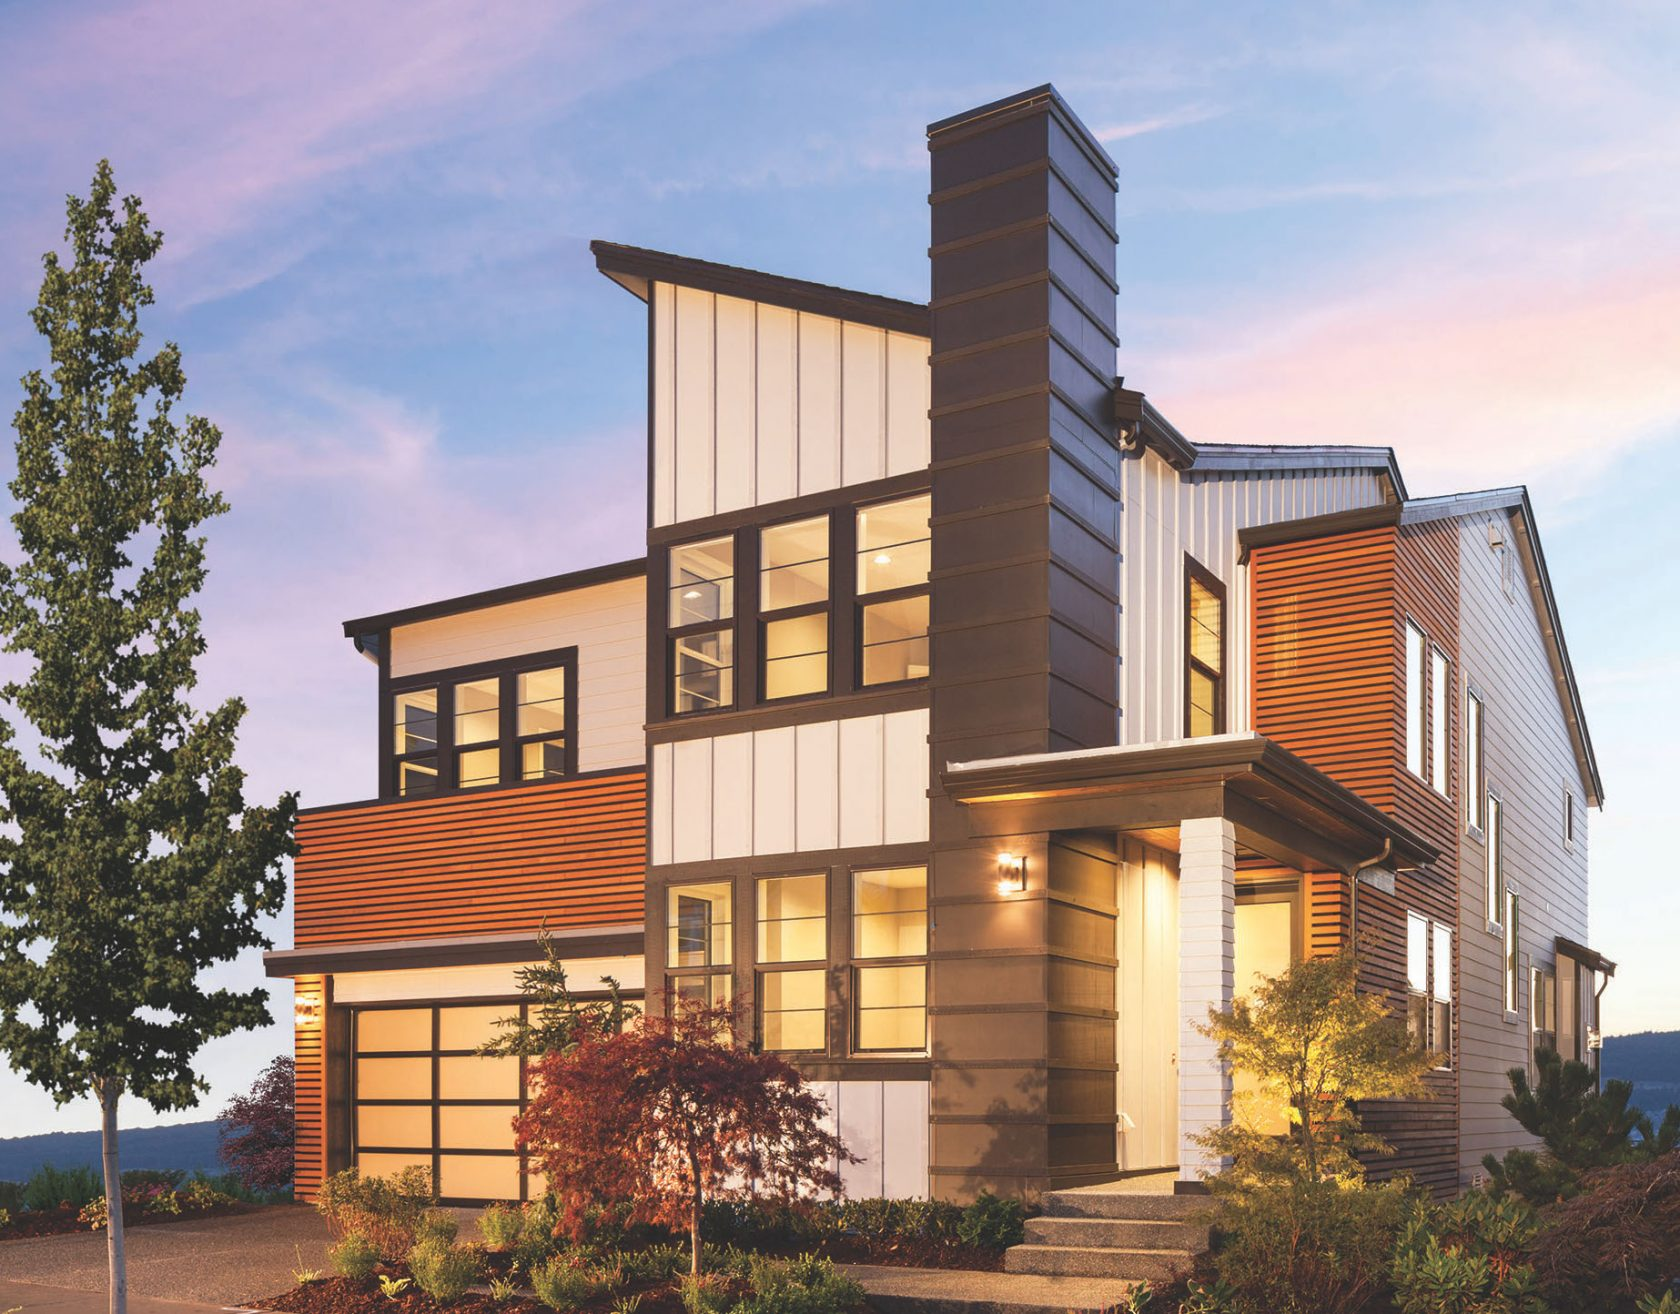 Exterior of a modern single family house in Portland, Oregon.